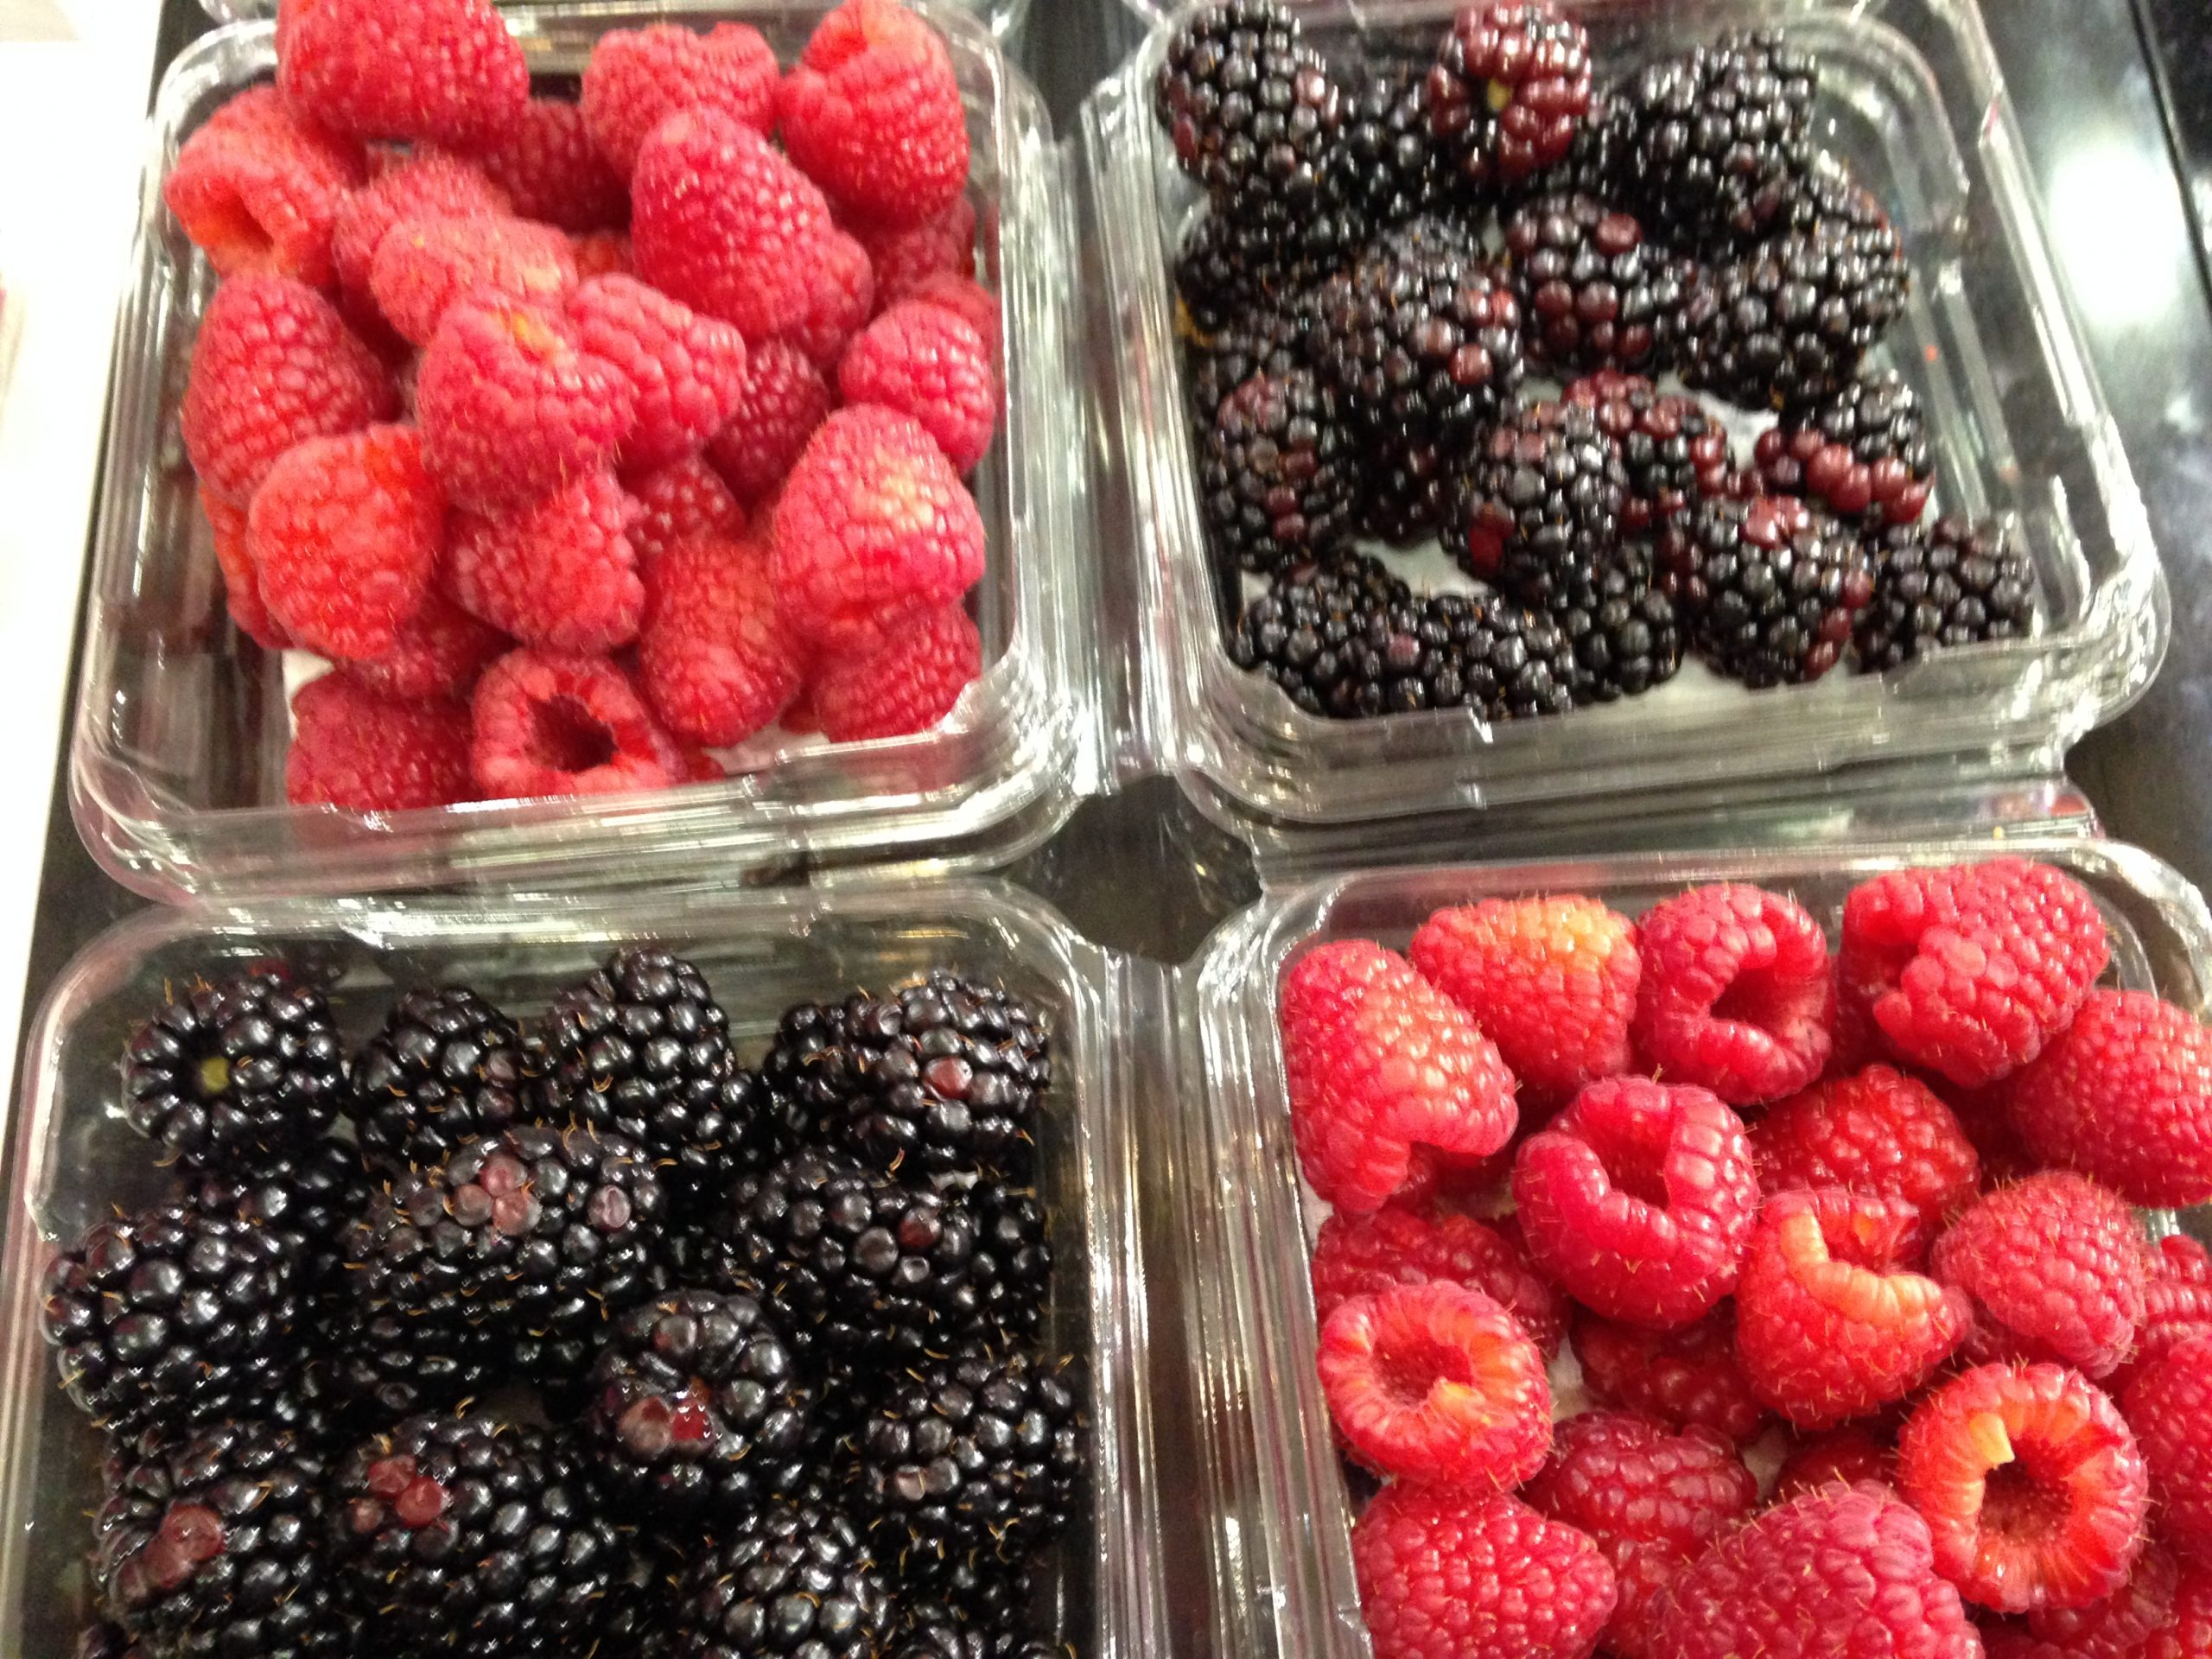 Spanish soft fruit production increases and consolidates as an alternative to strawberries.